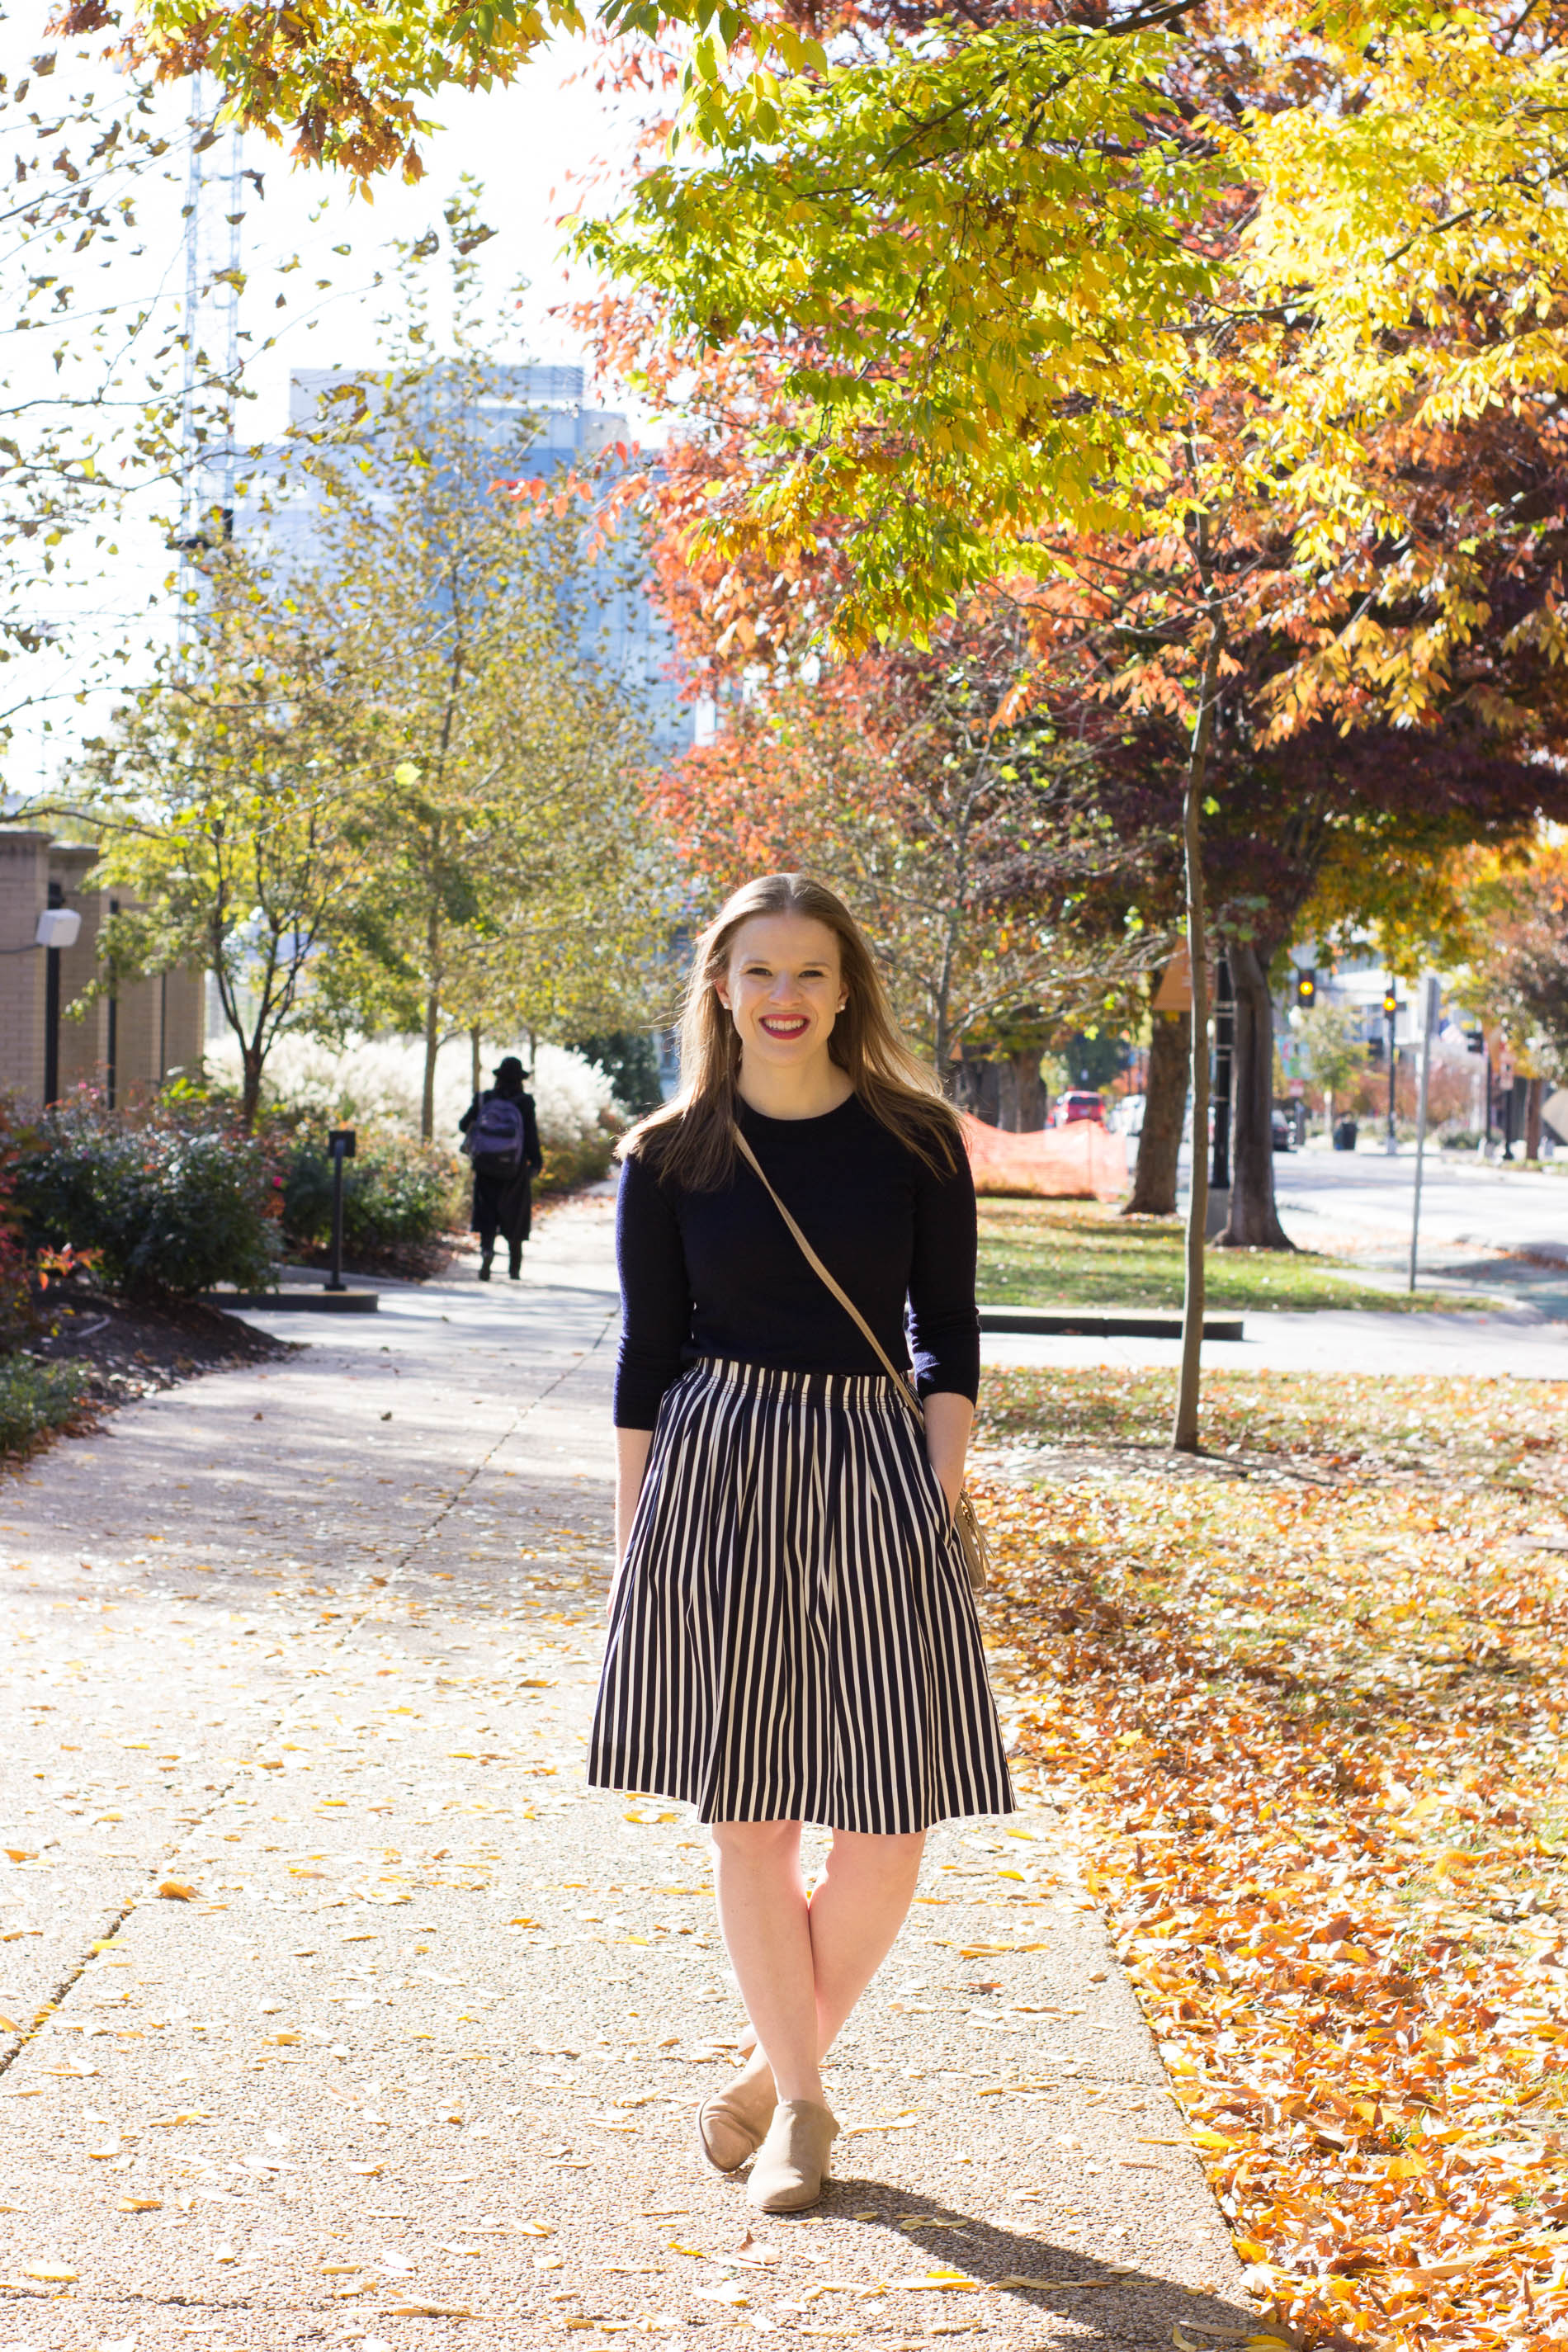 5 Easy Thanksgiving Outfit Ideas | Something Good, @danaerinw , women, fashion, clothing, style, clothes, holiday season, striped midi skirt, navy and white stripes, navy crew neck sweater, j.crew factory, j.crew, crossbody bag, everlane shoes, mules, heeled mules, thanksgiving ideas, fashion